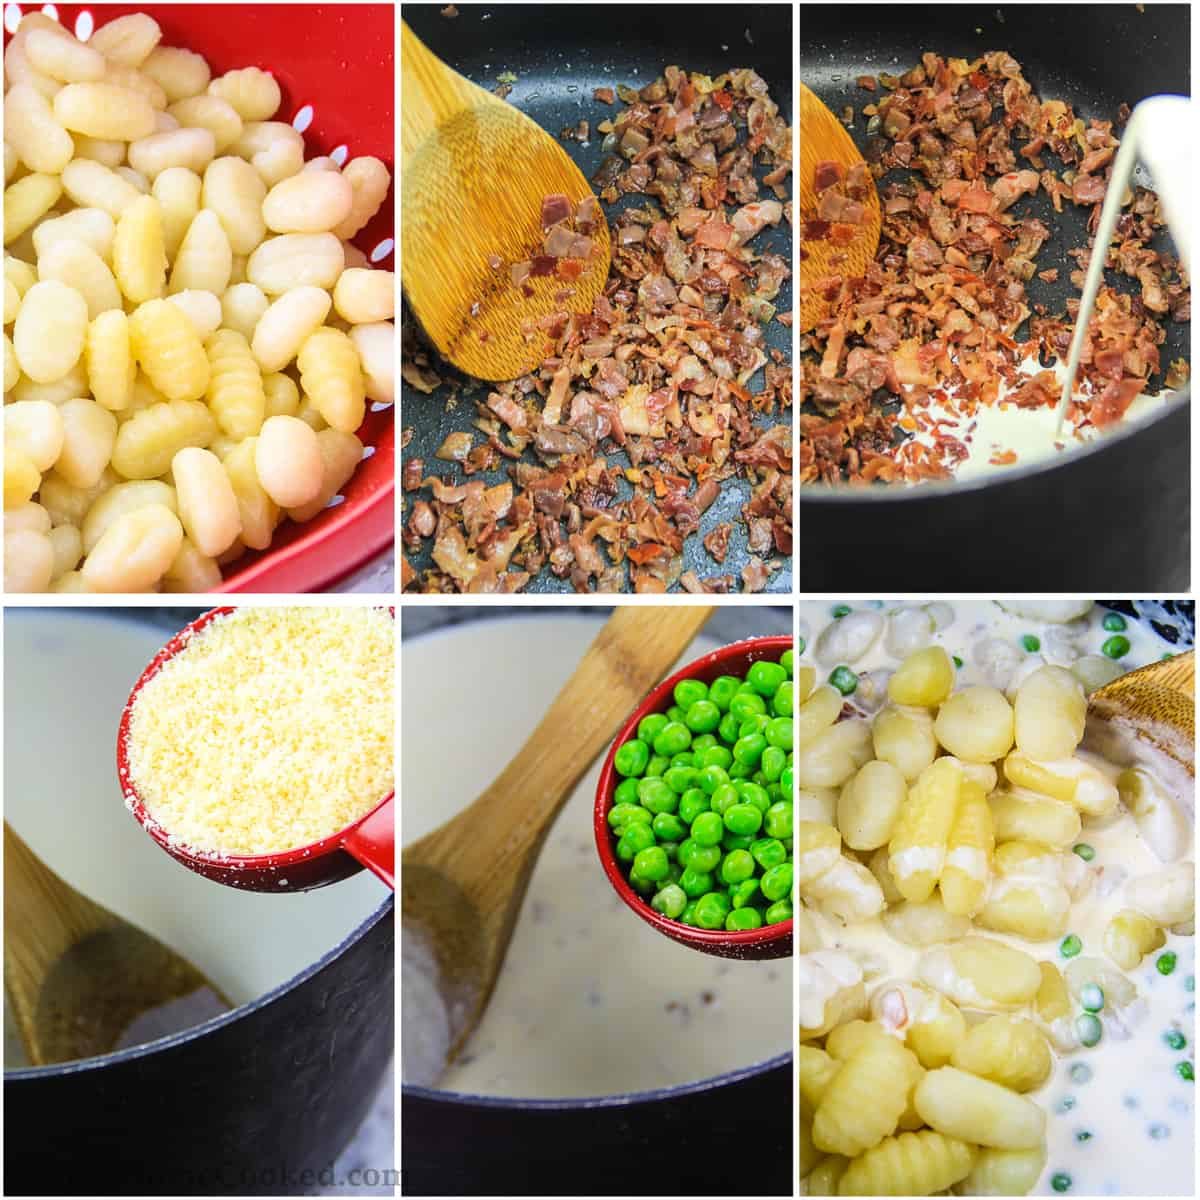 Step by step photo collage of cooking the potato gnocchi recipe including cooking the prosciutto and making the cream sauce